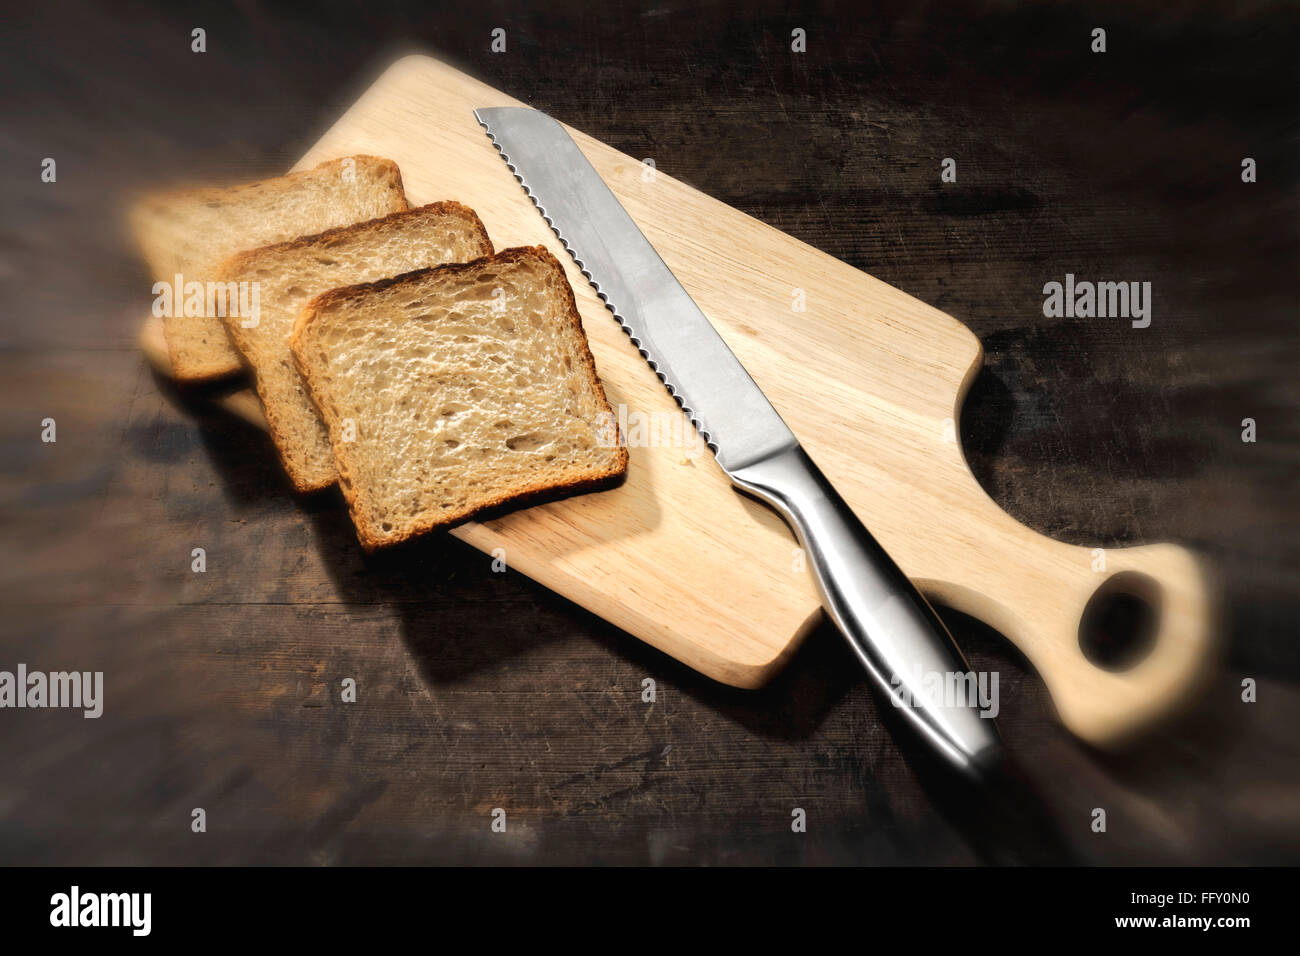 Kitchen things , bread with bread knife on wooden cutting board - Stock Image